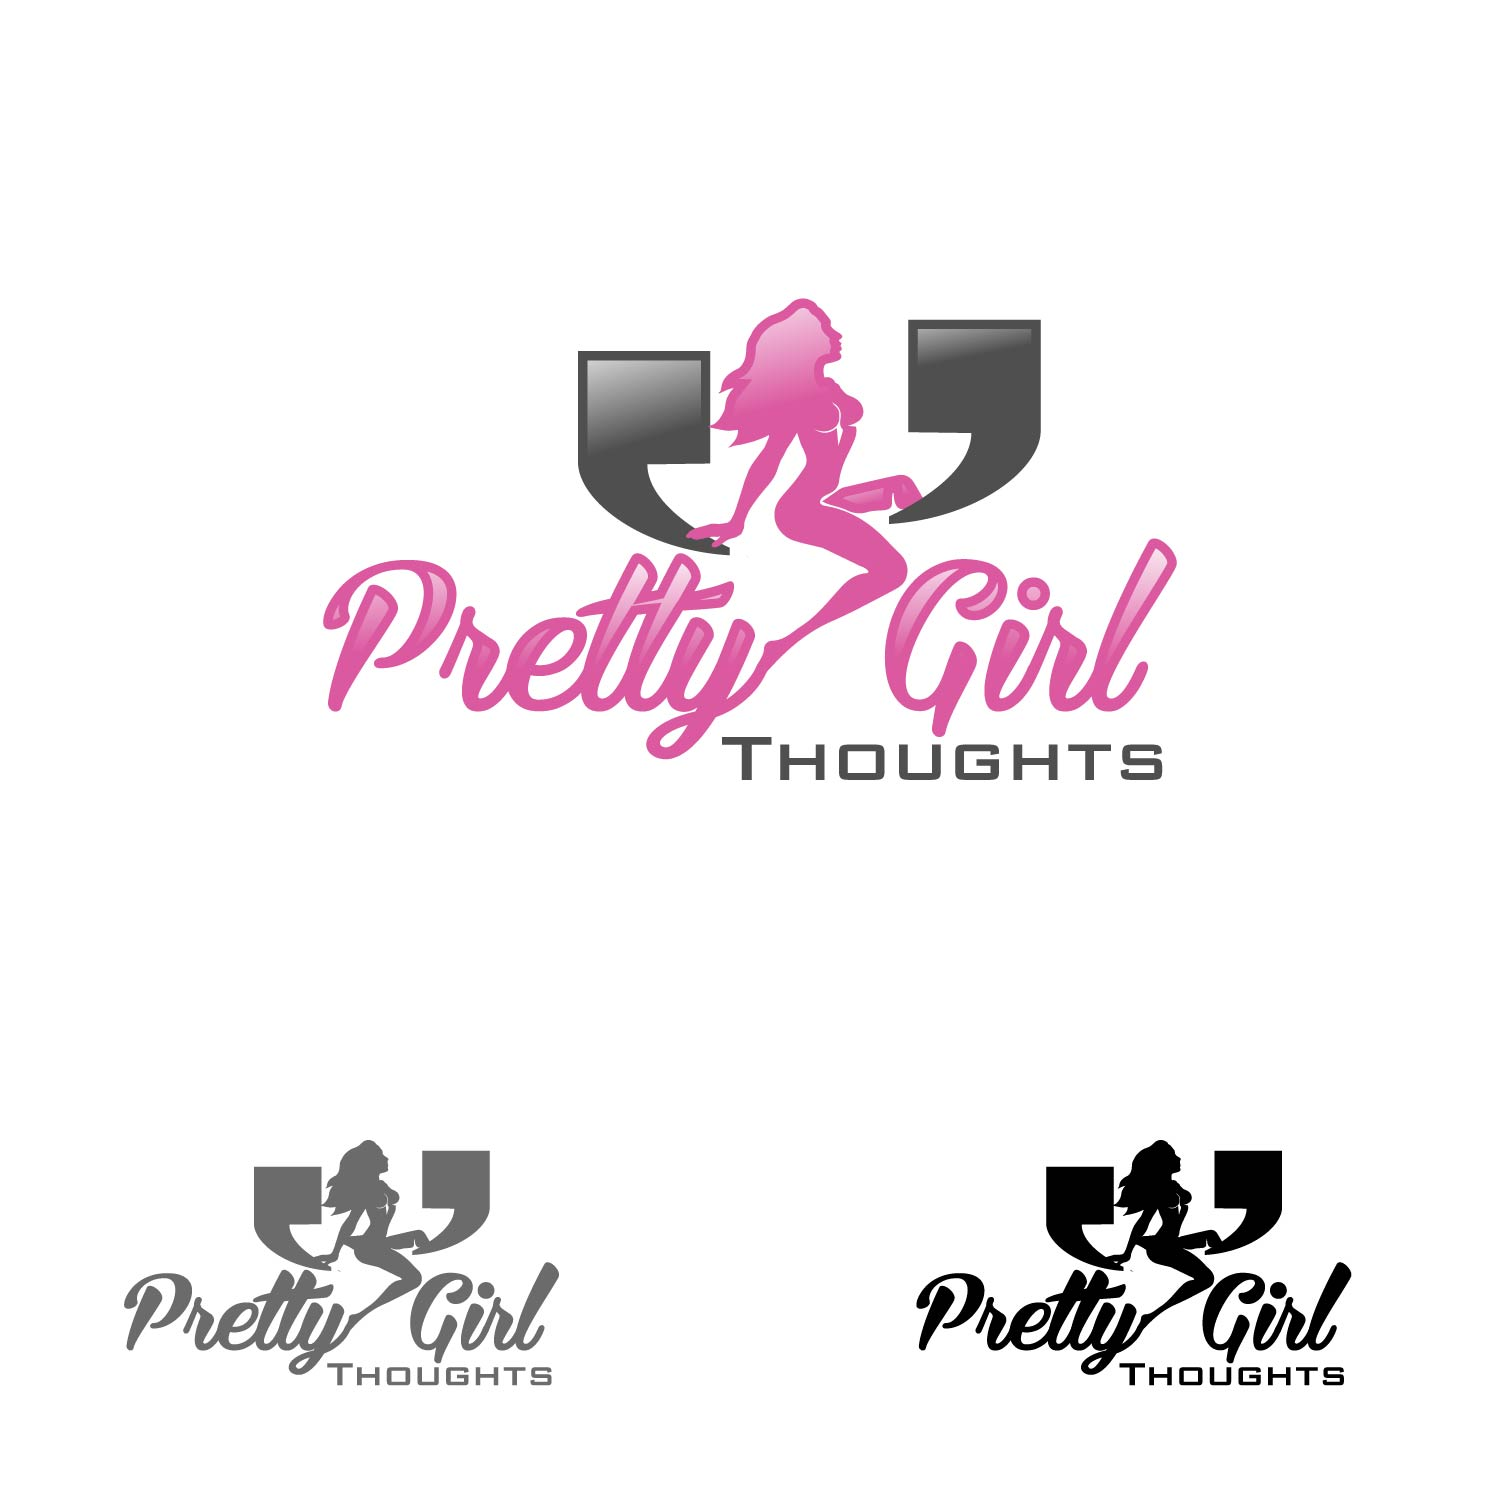 Logo Design by lagalag - Entry No. 58 in the Logo Design Contest Inspiring Logo Design for Pretty Girl Thoughts.